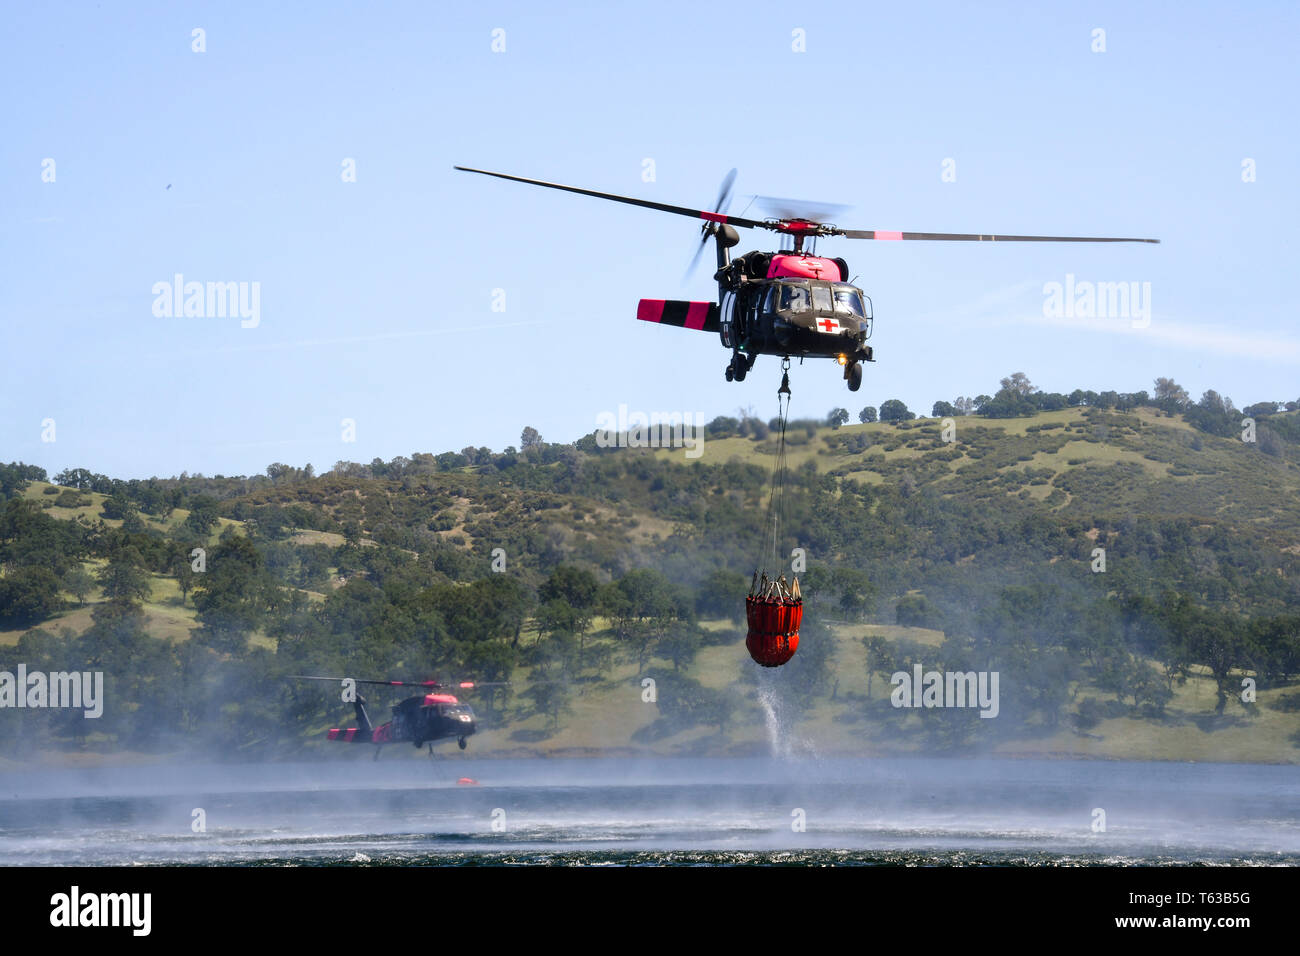 Two U.S. Army UH-60 Black Hawk medium utility helicopter from the 1-140th Aviation Regiment dips their water bucket bucket in the Pardee Reservoir during annual joint aerial fire fighting training near Ione California, April 27, 2019. California Army and Air National Guard helicopters units train together alongside Cal Fire. The partnership enhances California aerial wild land fire fighting capabilities. (U.S. Air National Guard photo by Staff Sgt. Christian Jadot) - Stock Image